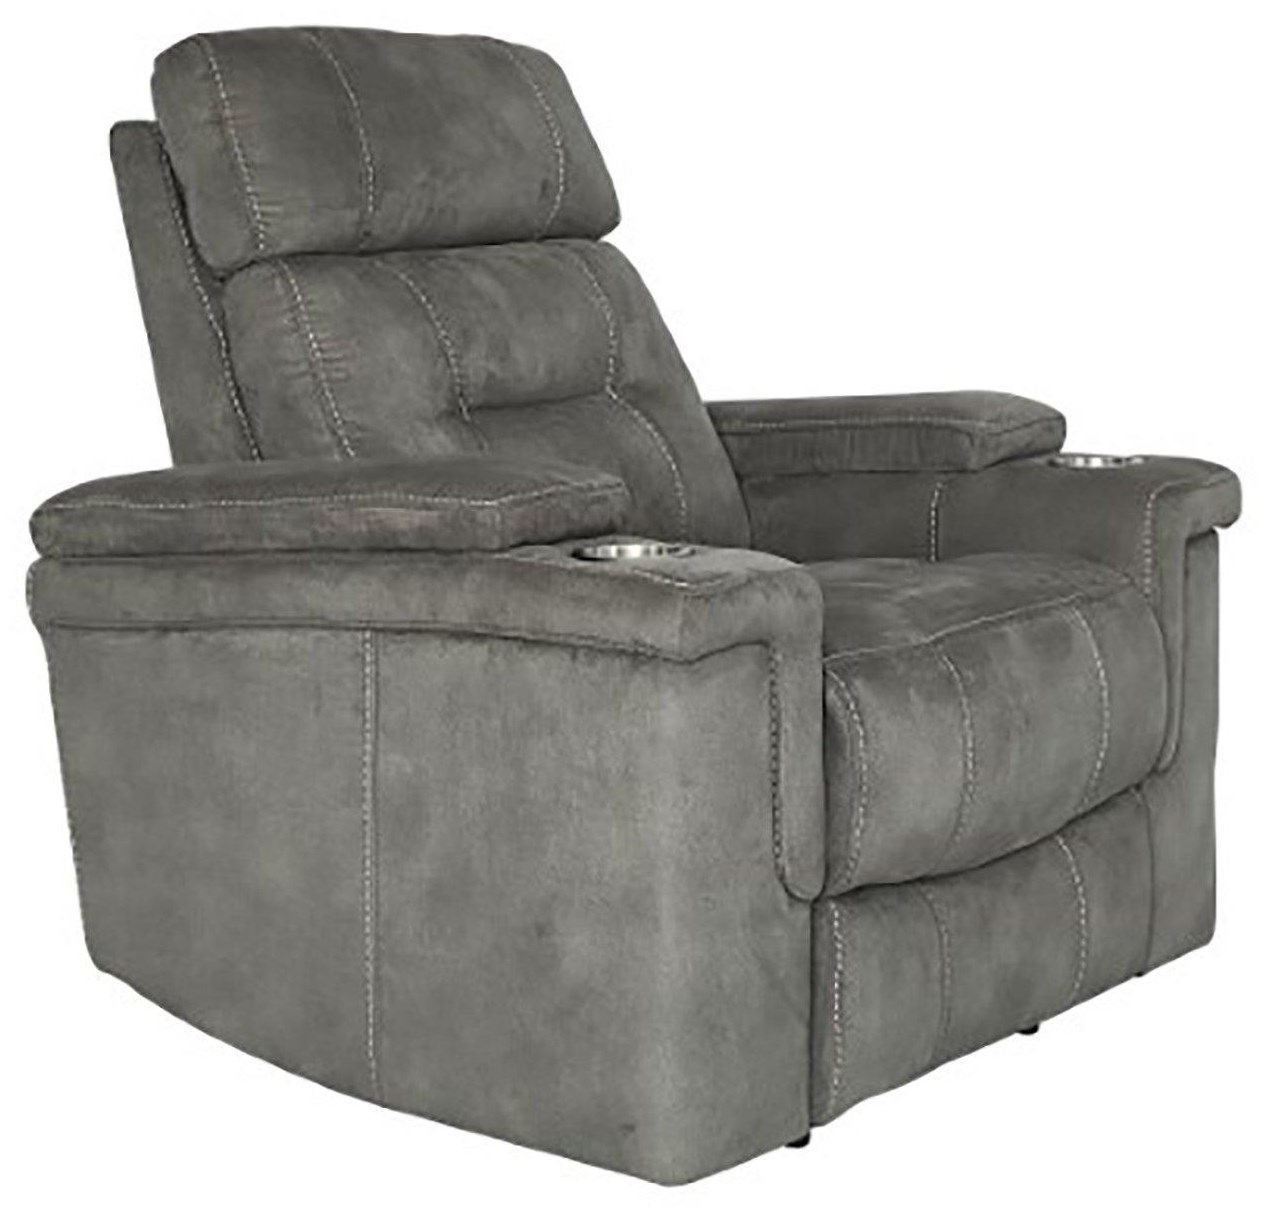 Diesel Power Recliner by Parker House at Johnny Janosik